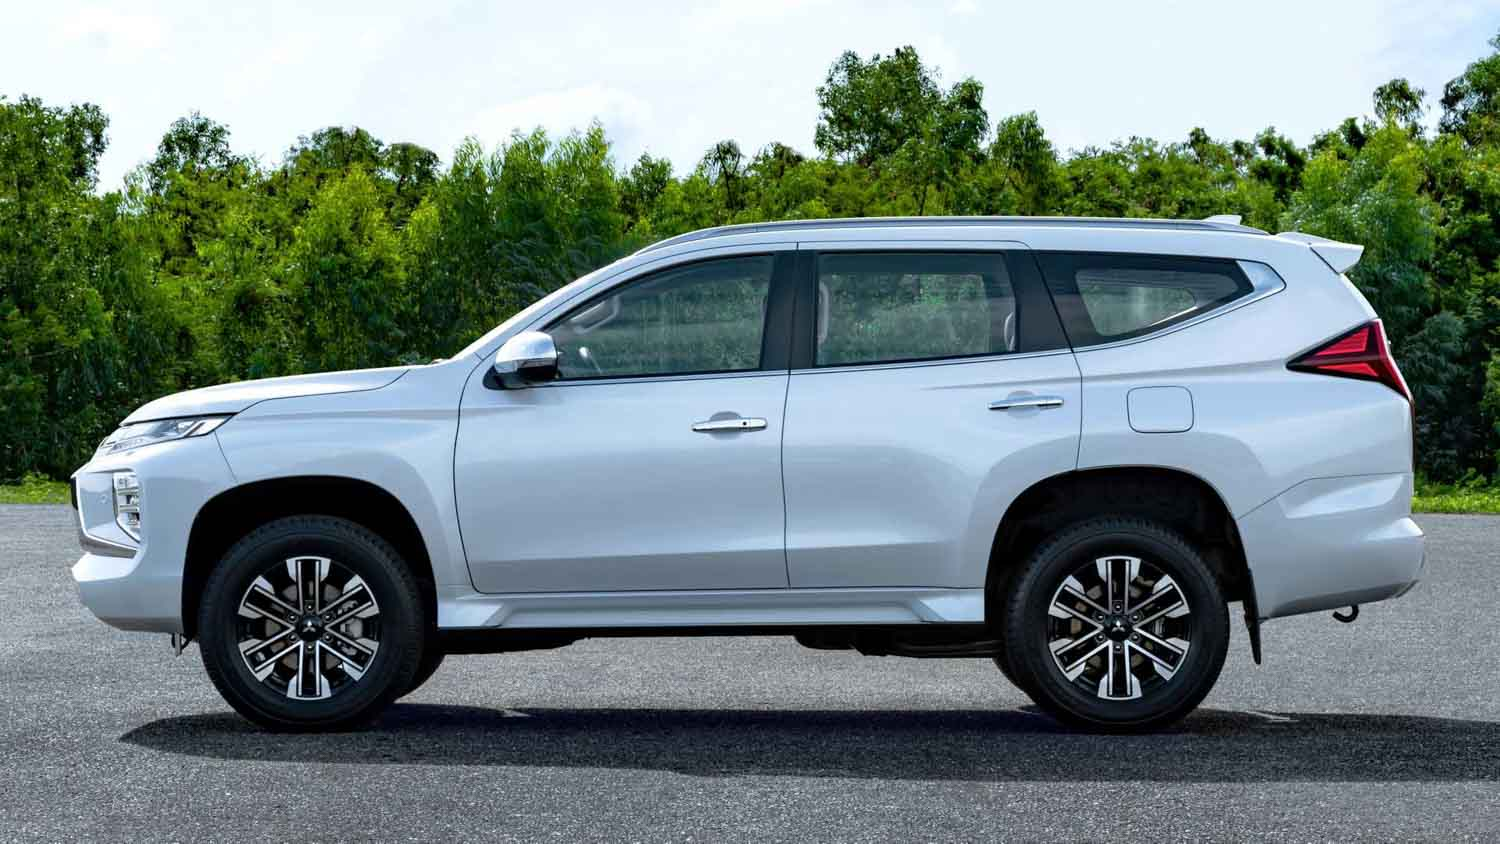 24 A Mitsubishi New Pajero 2020 Redesign And Review